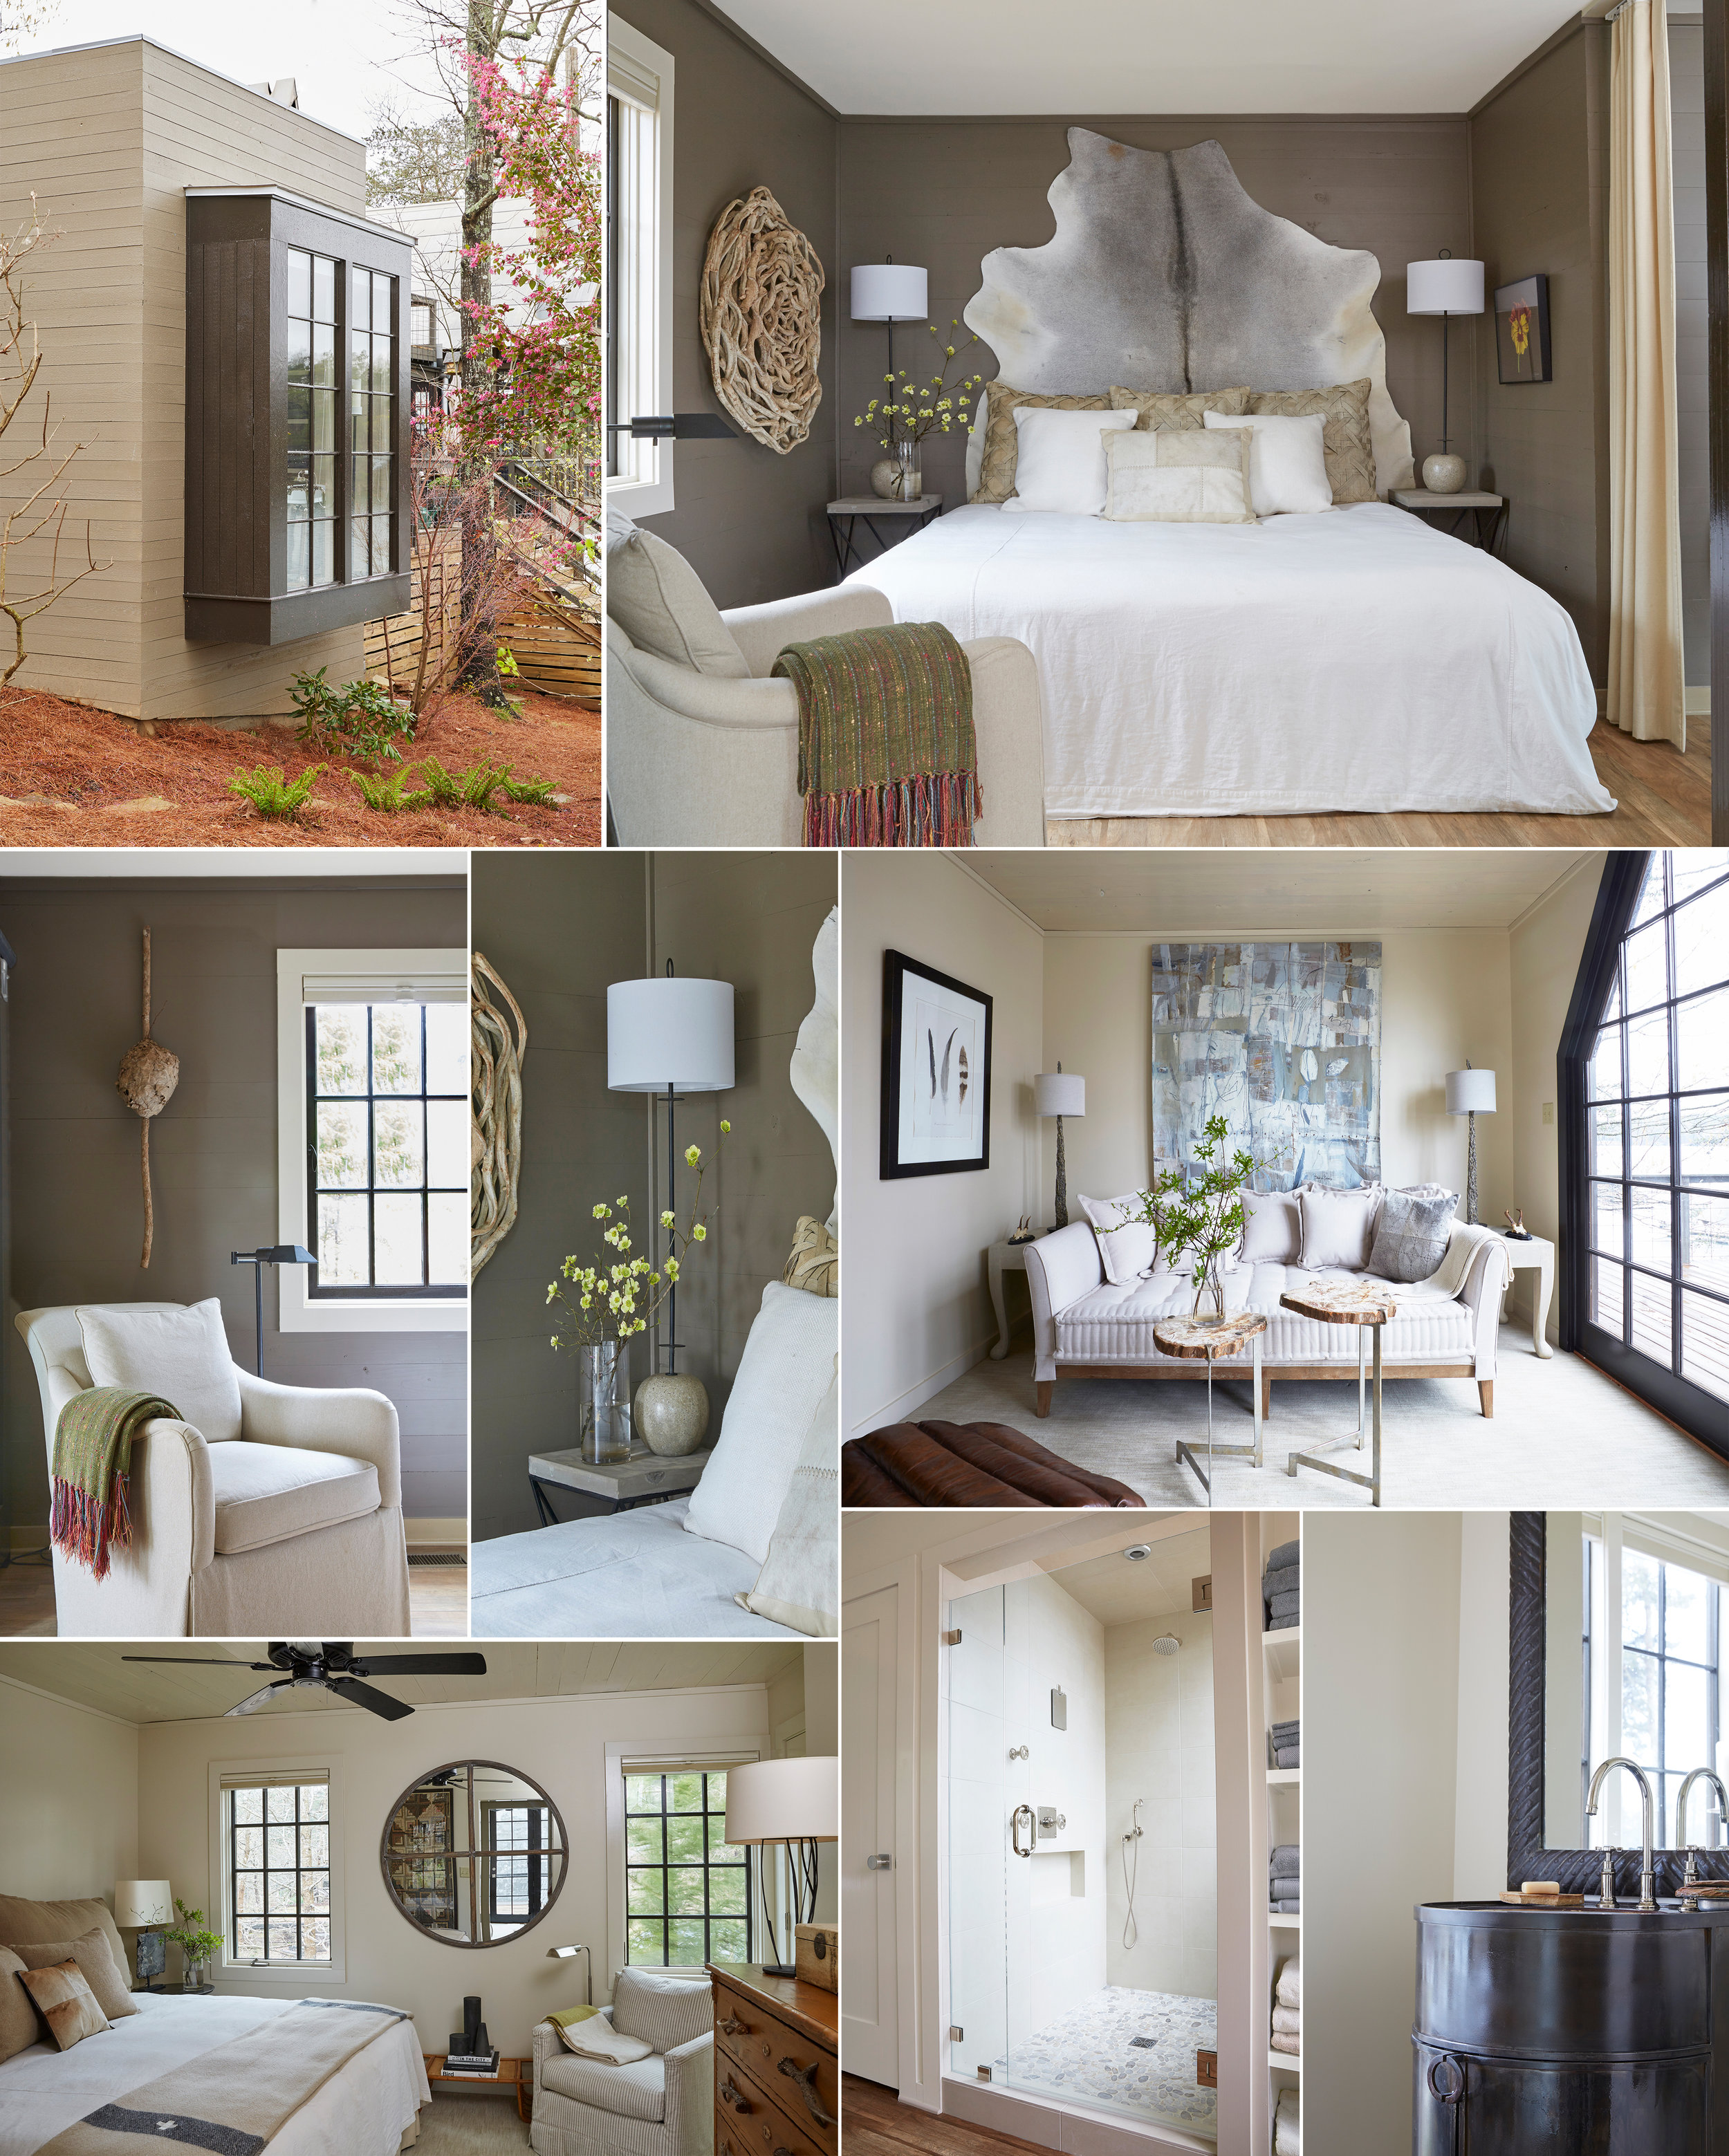 Seven Sticks Lake House collage interior and exterior design and details architecture Alabama